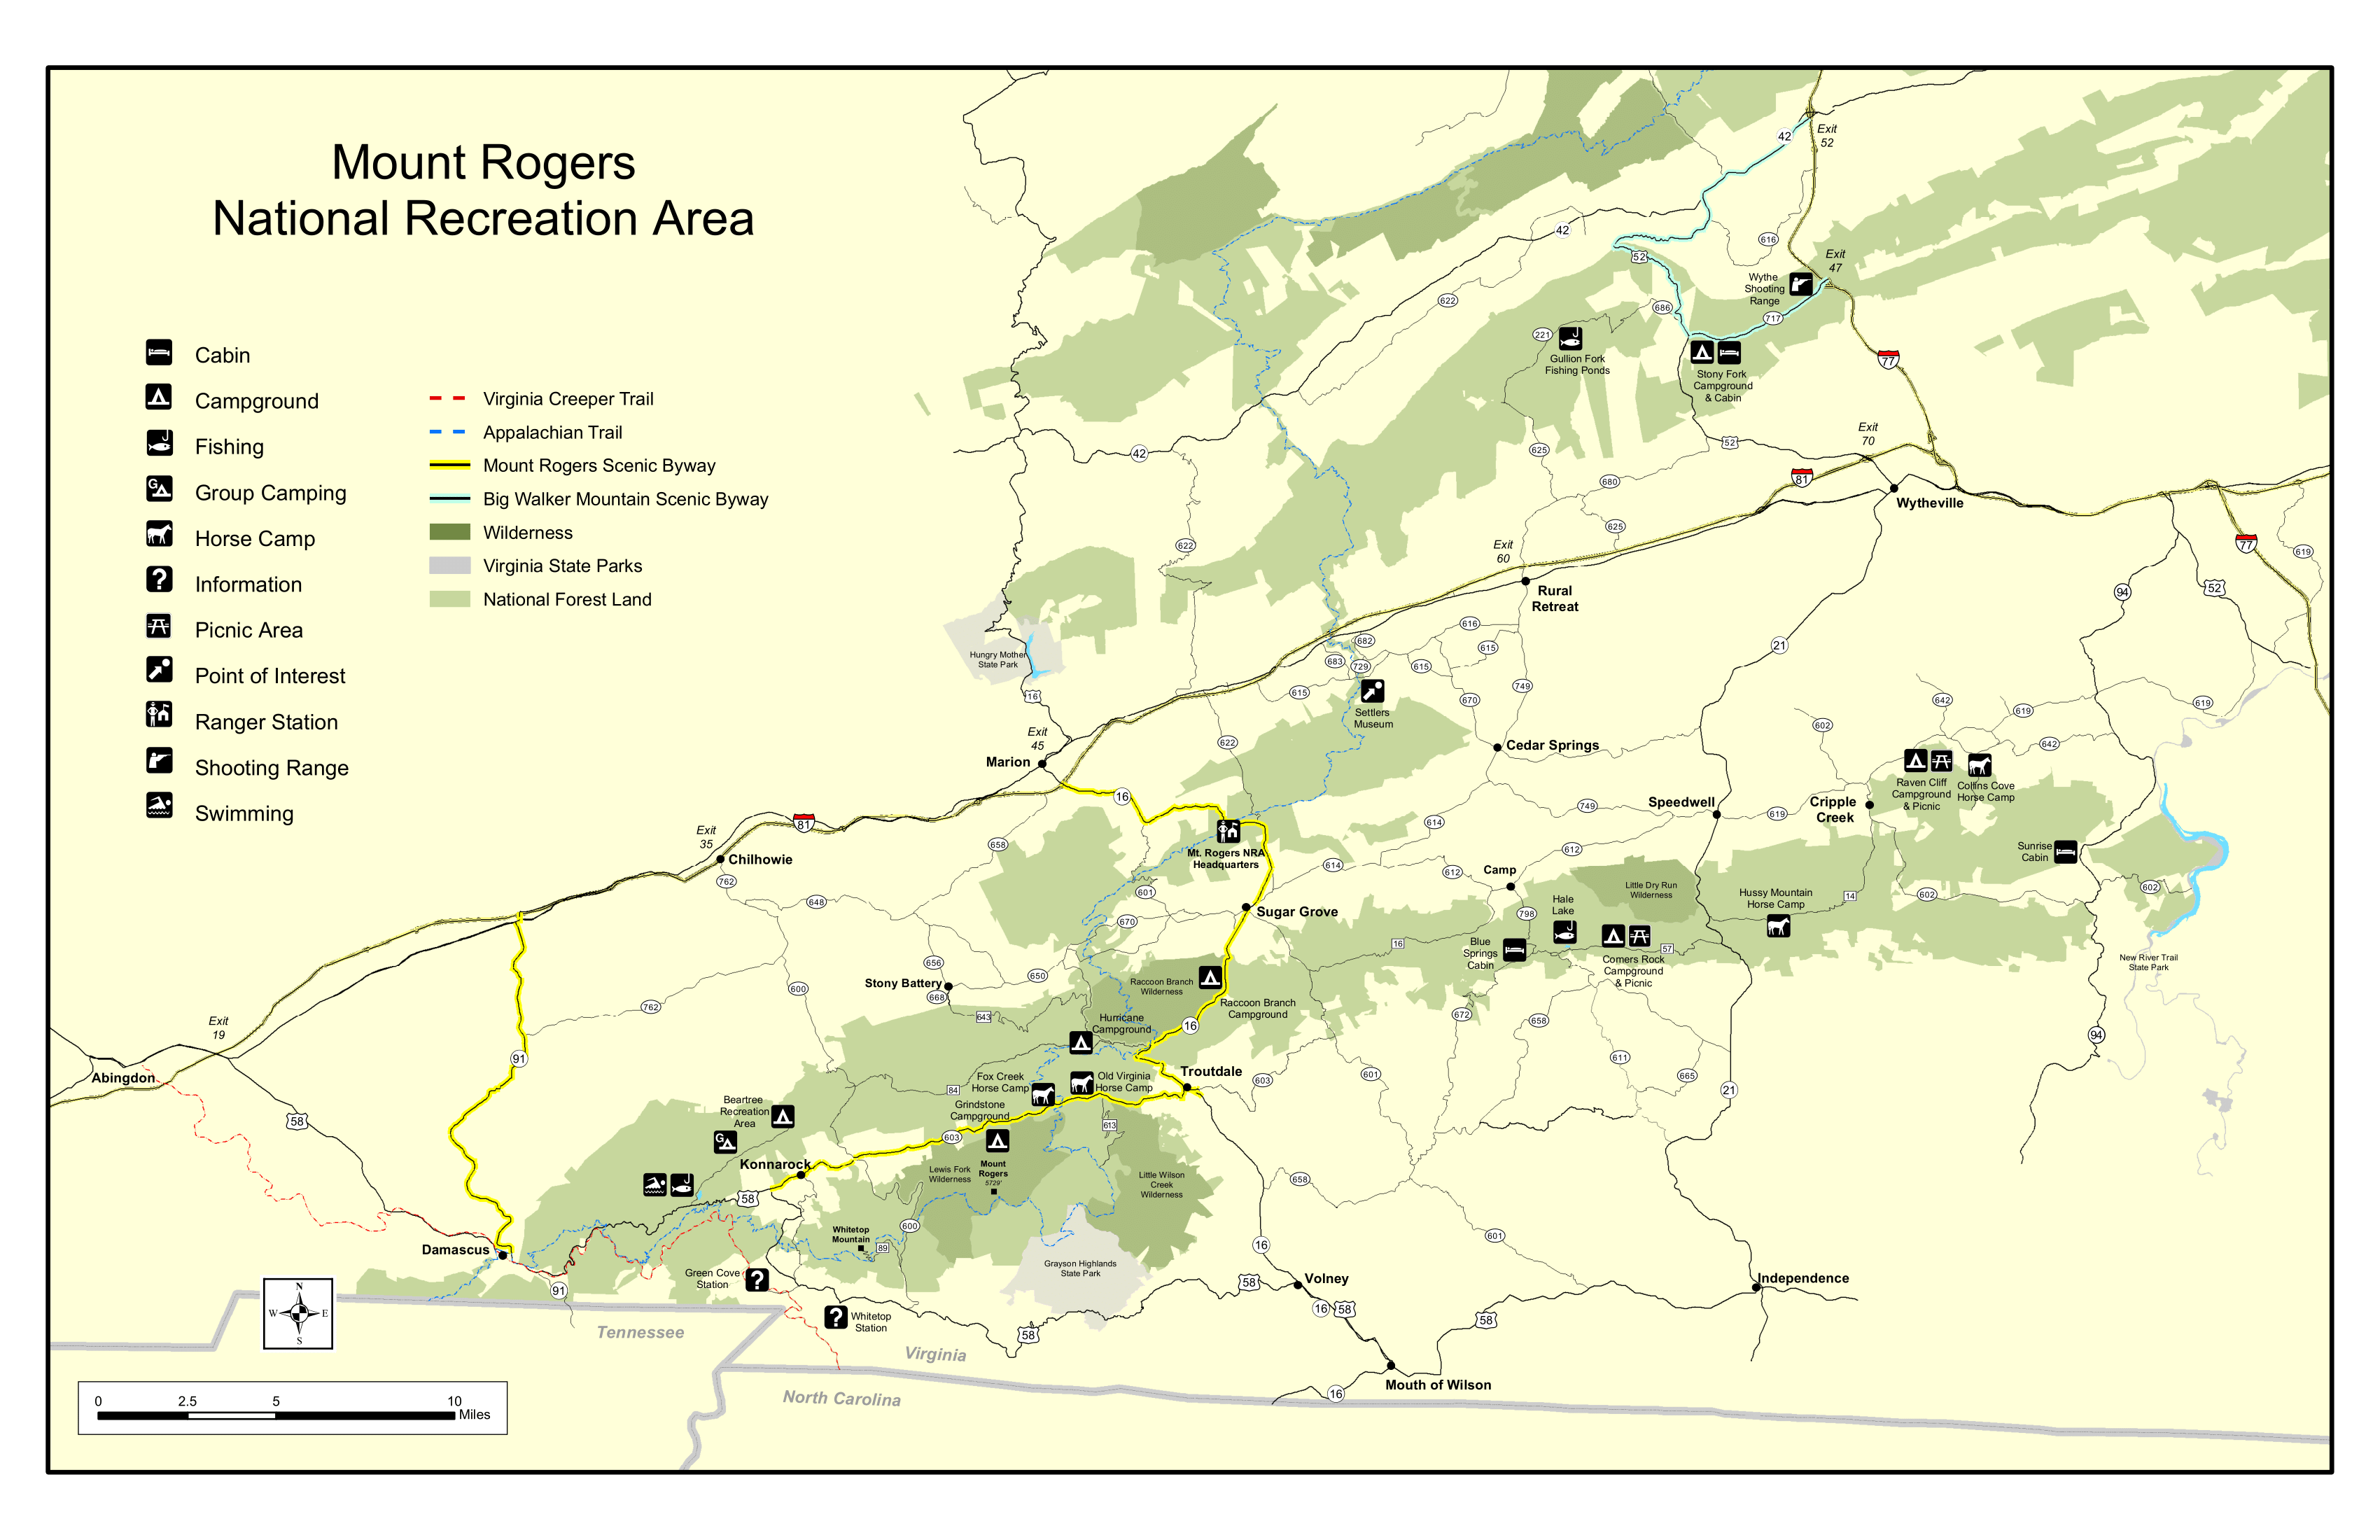 Mt. Rogers National Recreation Area Map of roads, trails, and boundaries